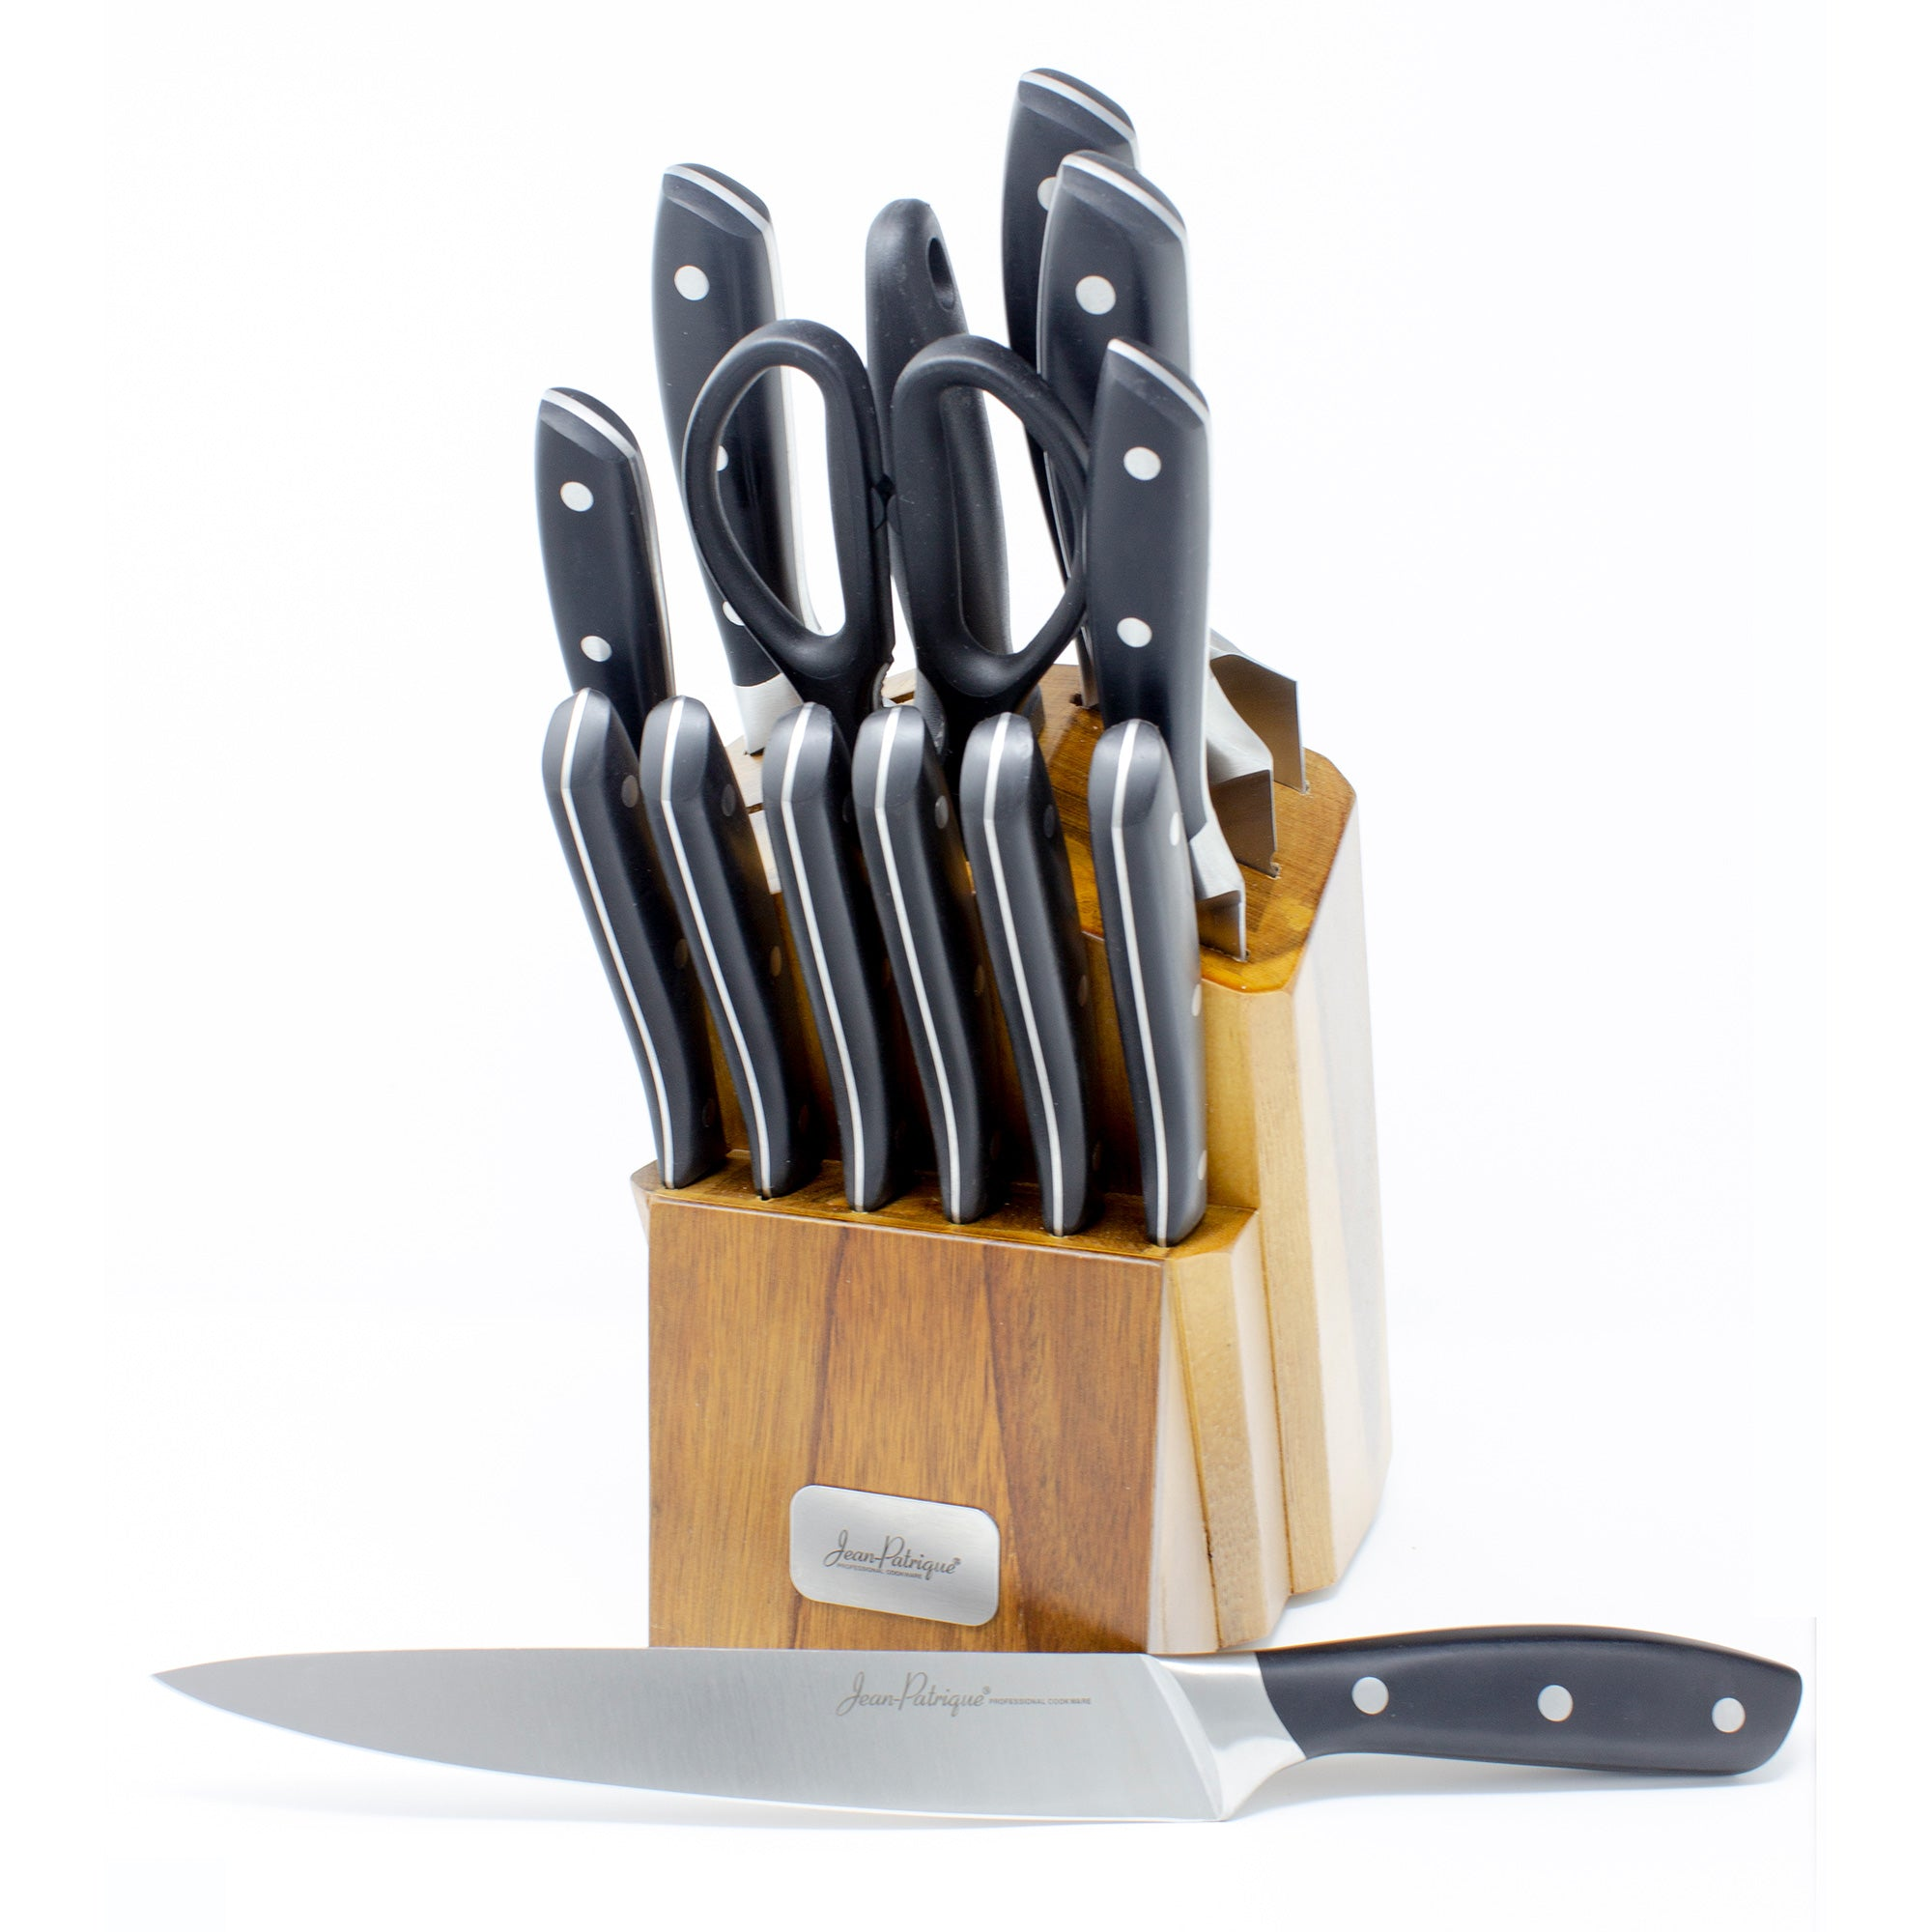 Onyx Collection 14 Piece Knife Set with Wooden Block